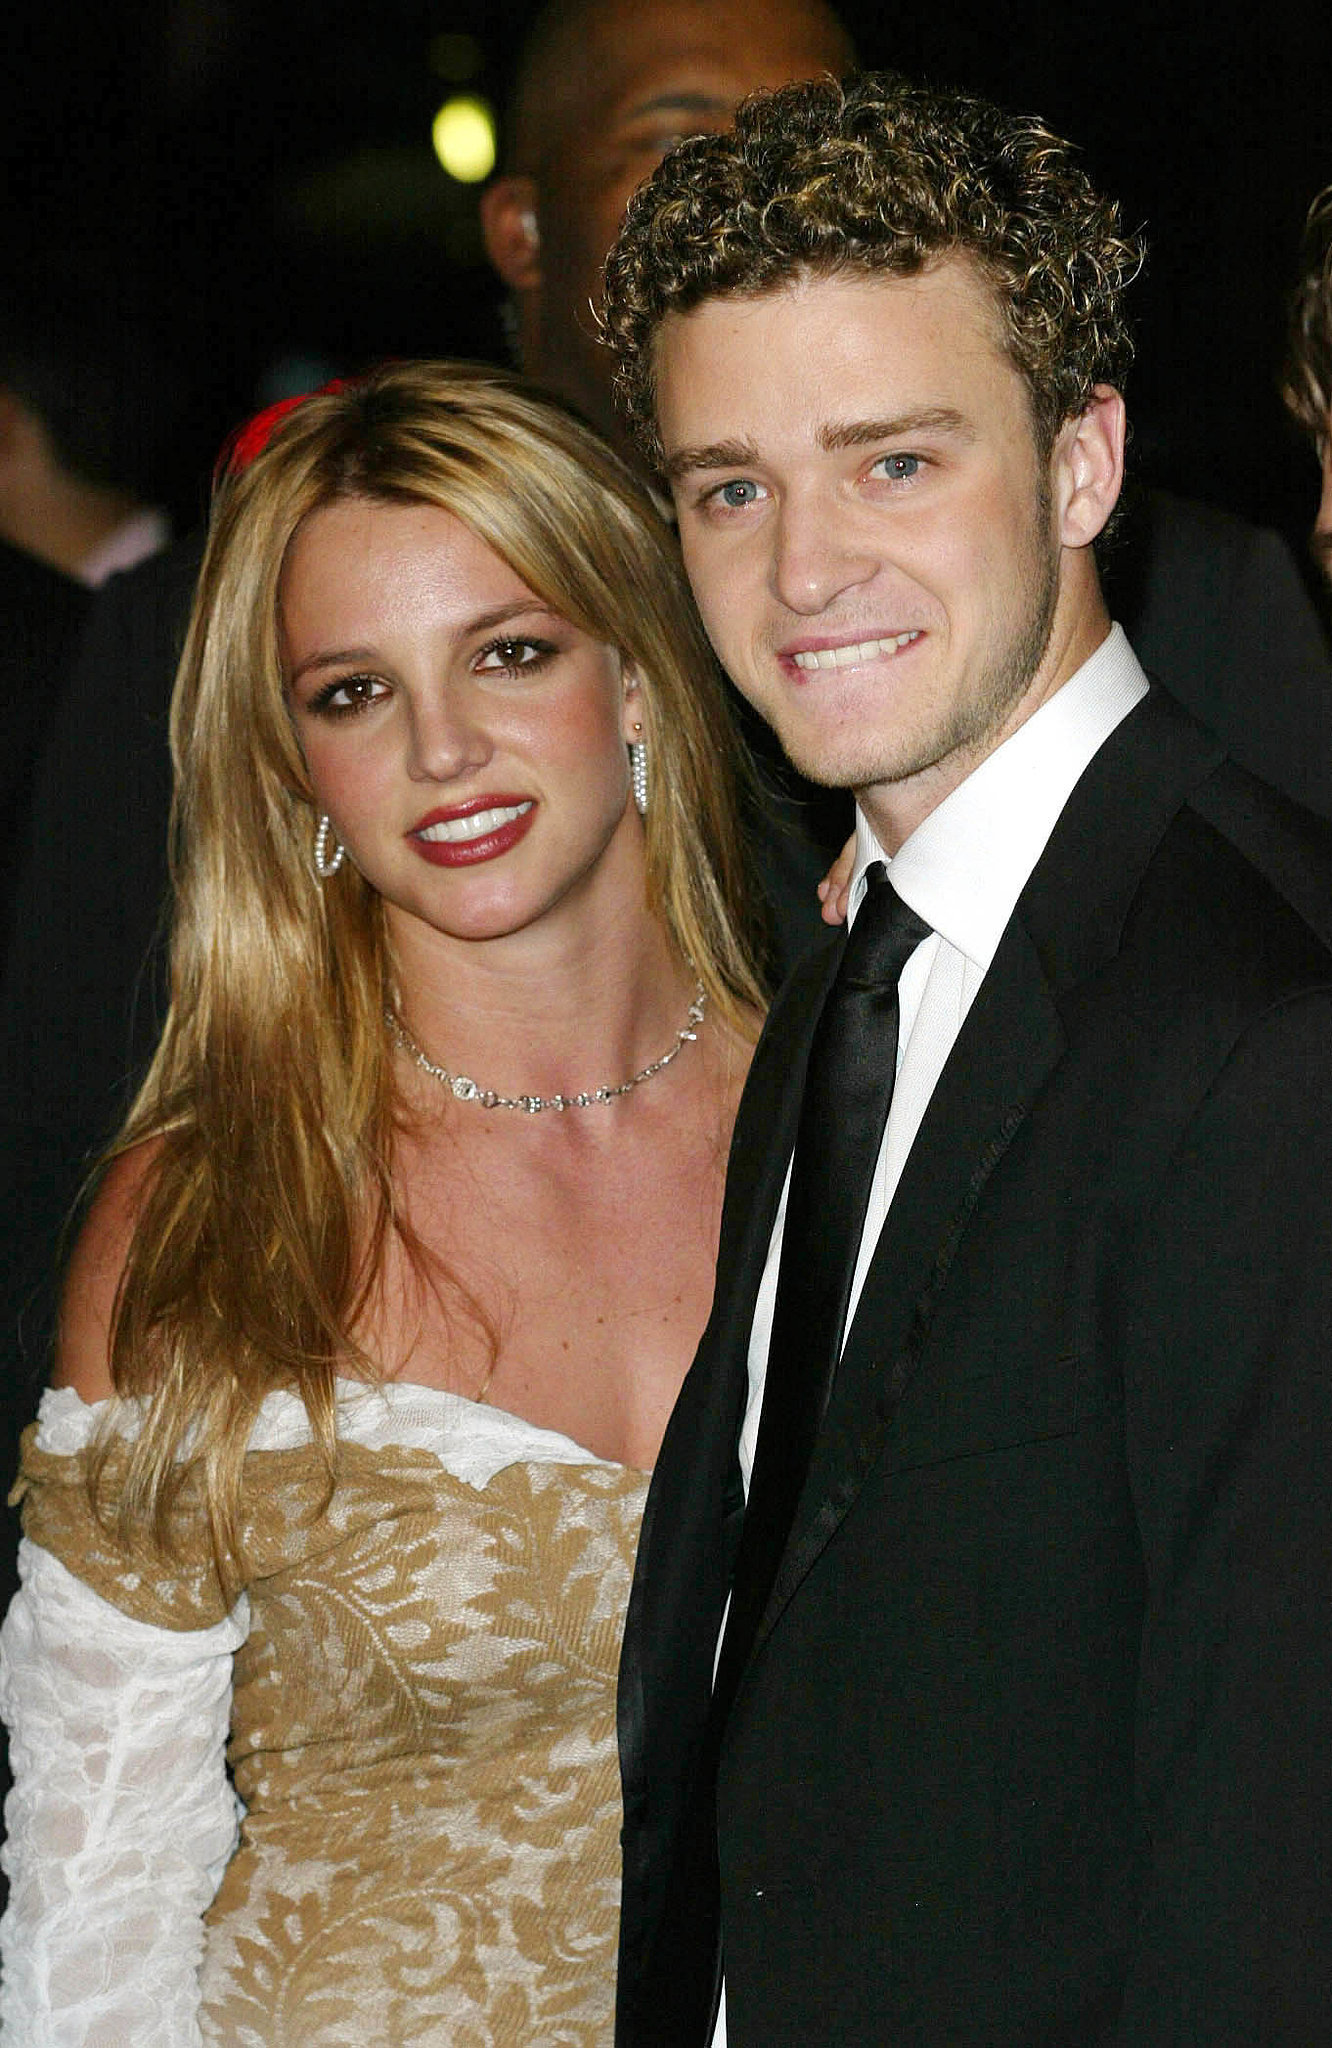 Justin and then-girlfriend Britney Spears arrived together ...